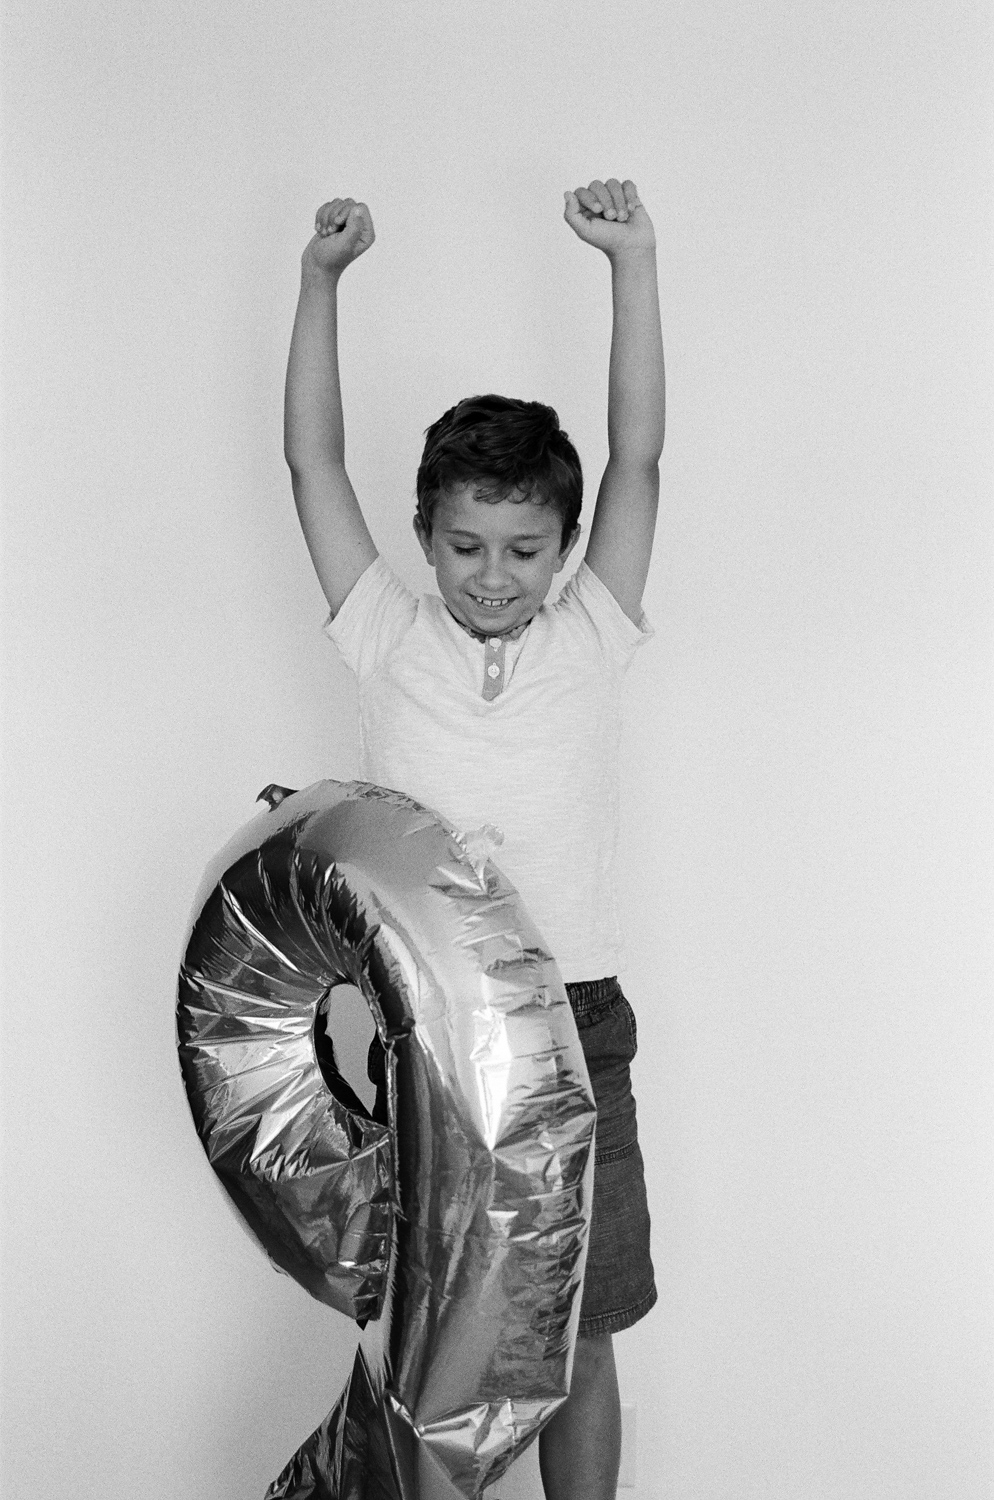 A young boy celebrating his birthday with a number balloon.